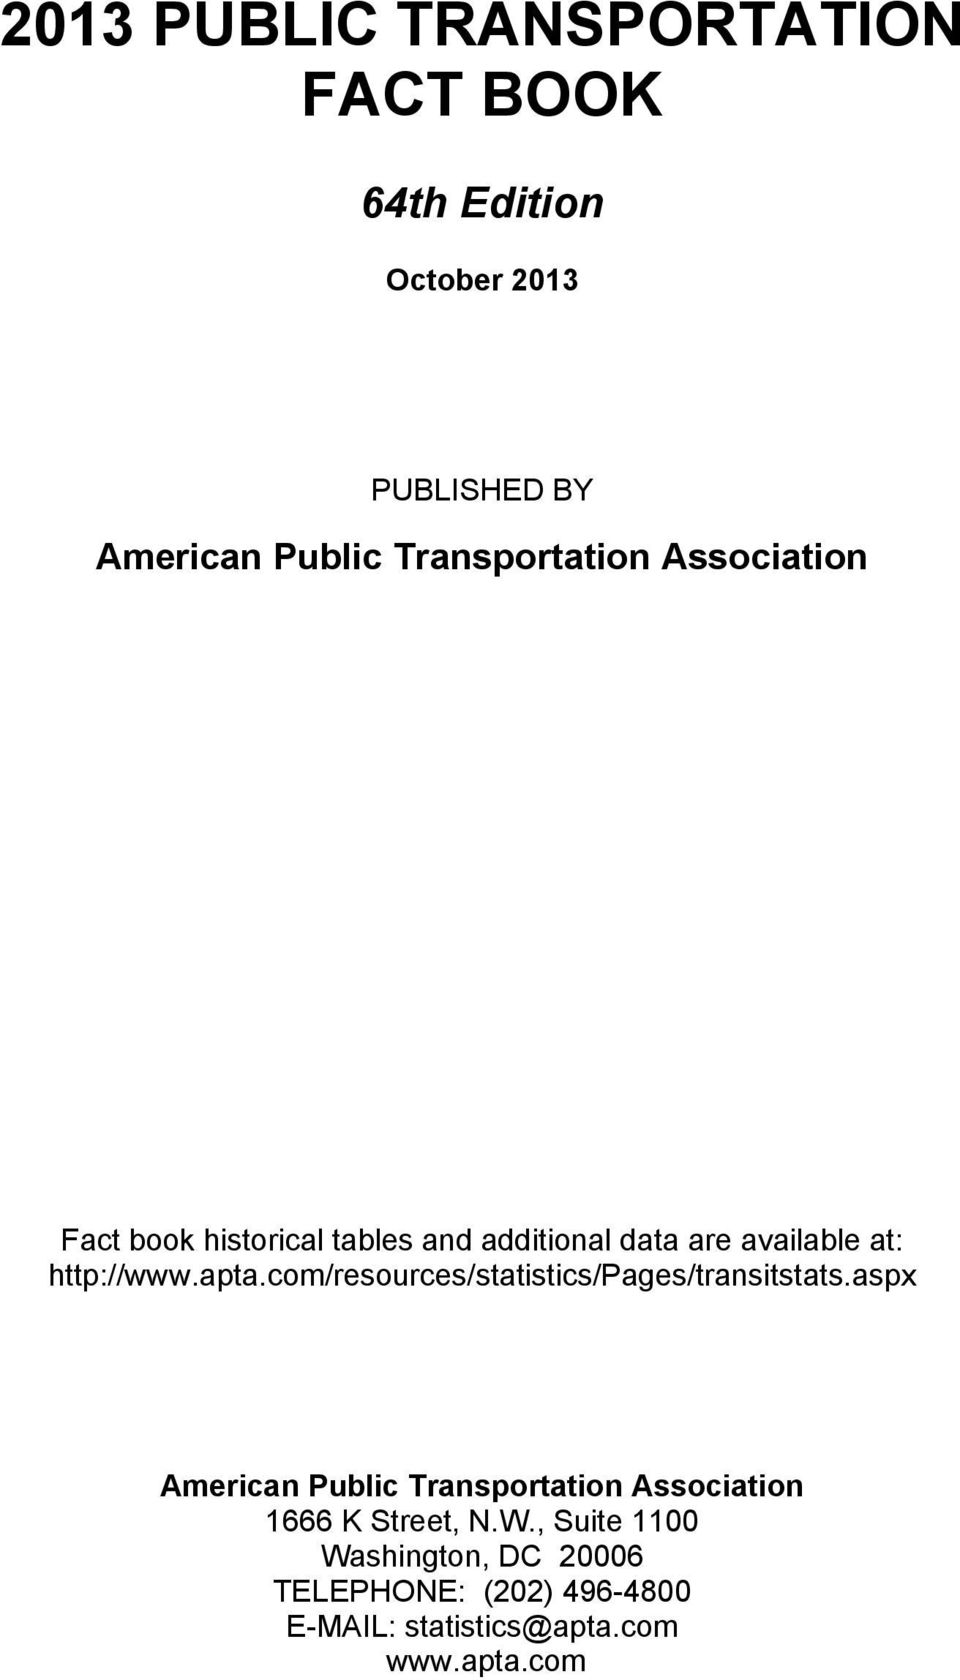 http://www.apta.com/resources/statistics/pages/transitstats.